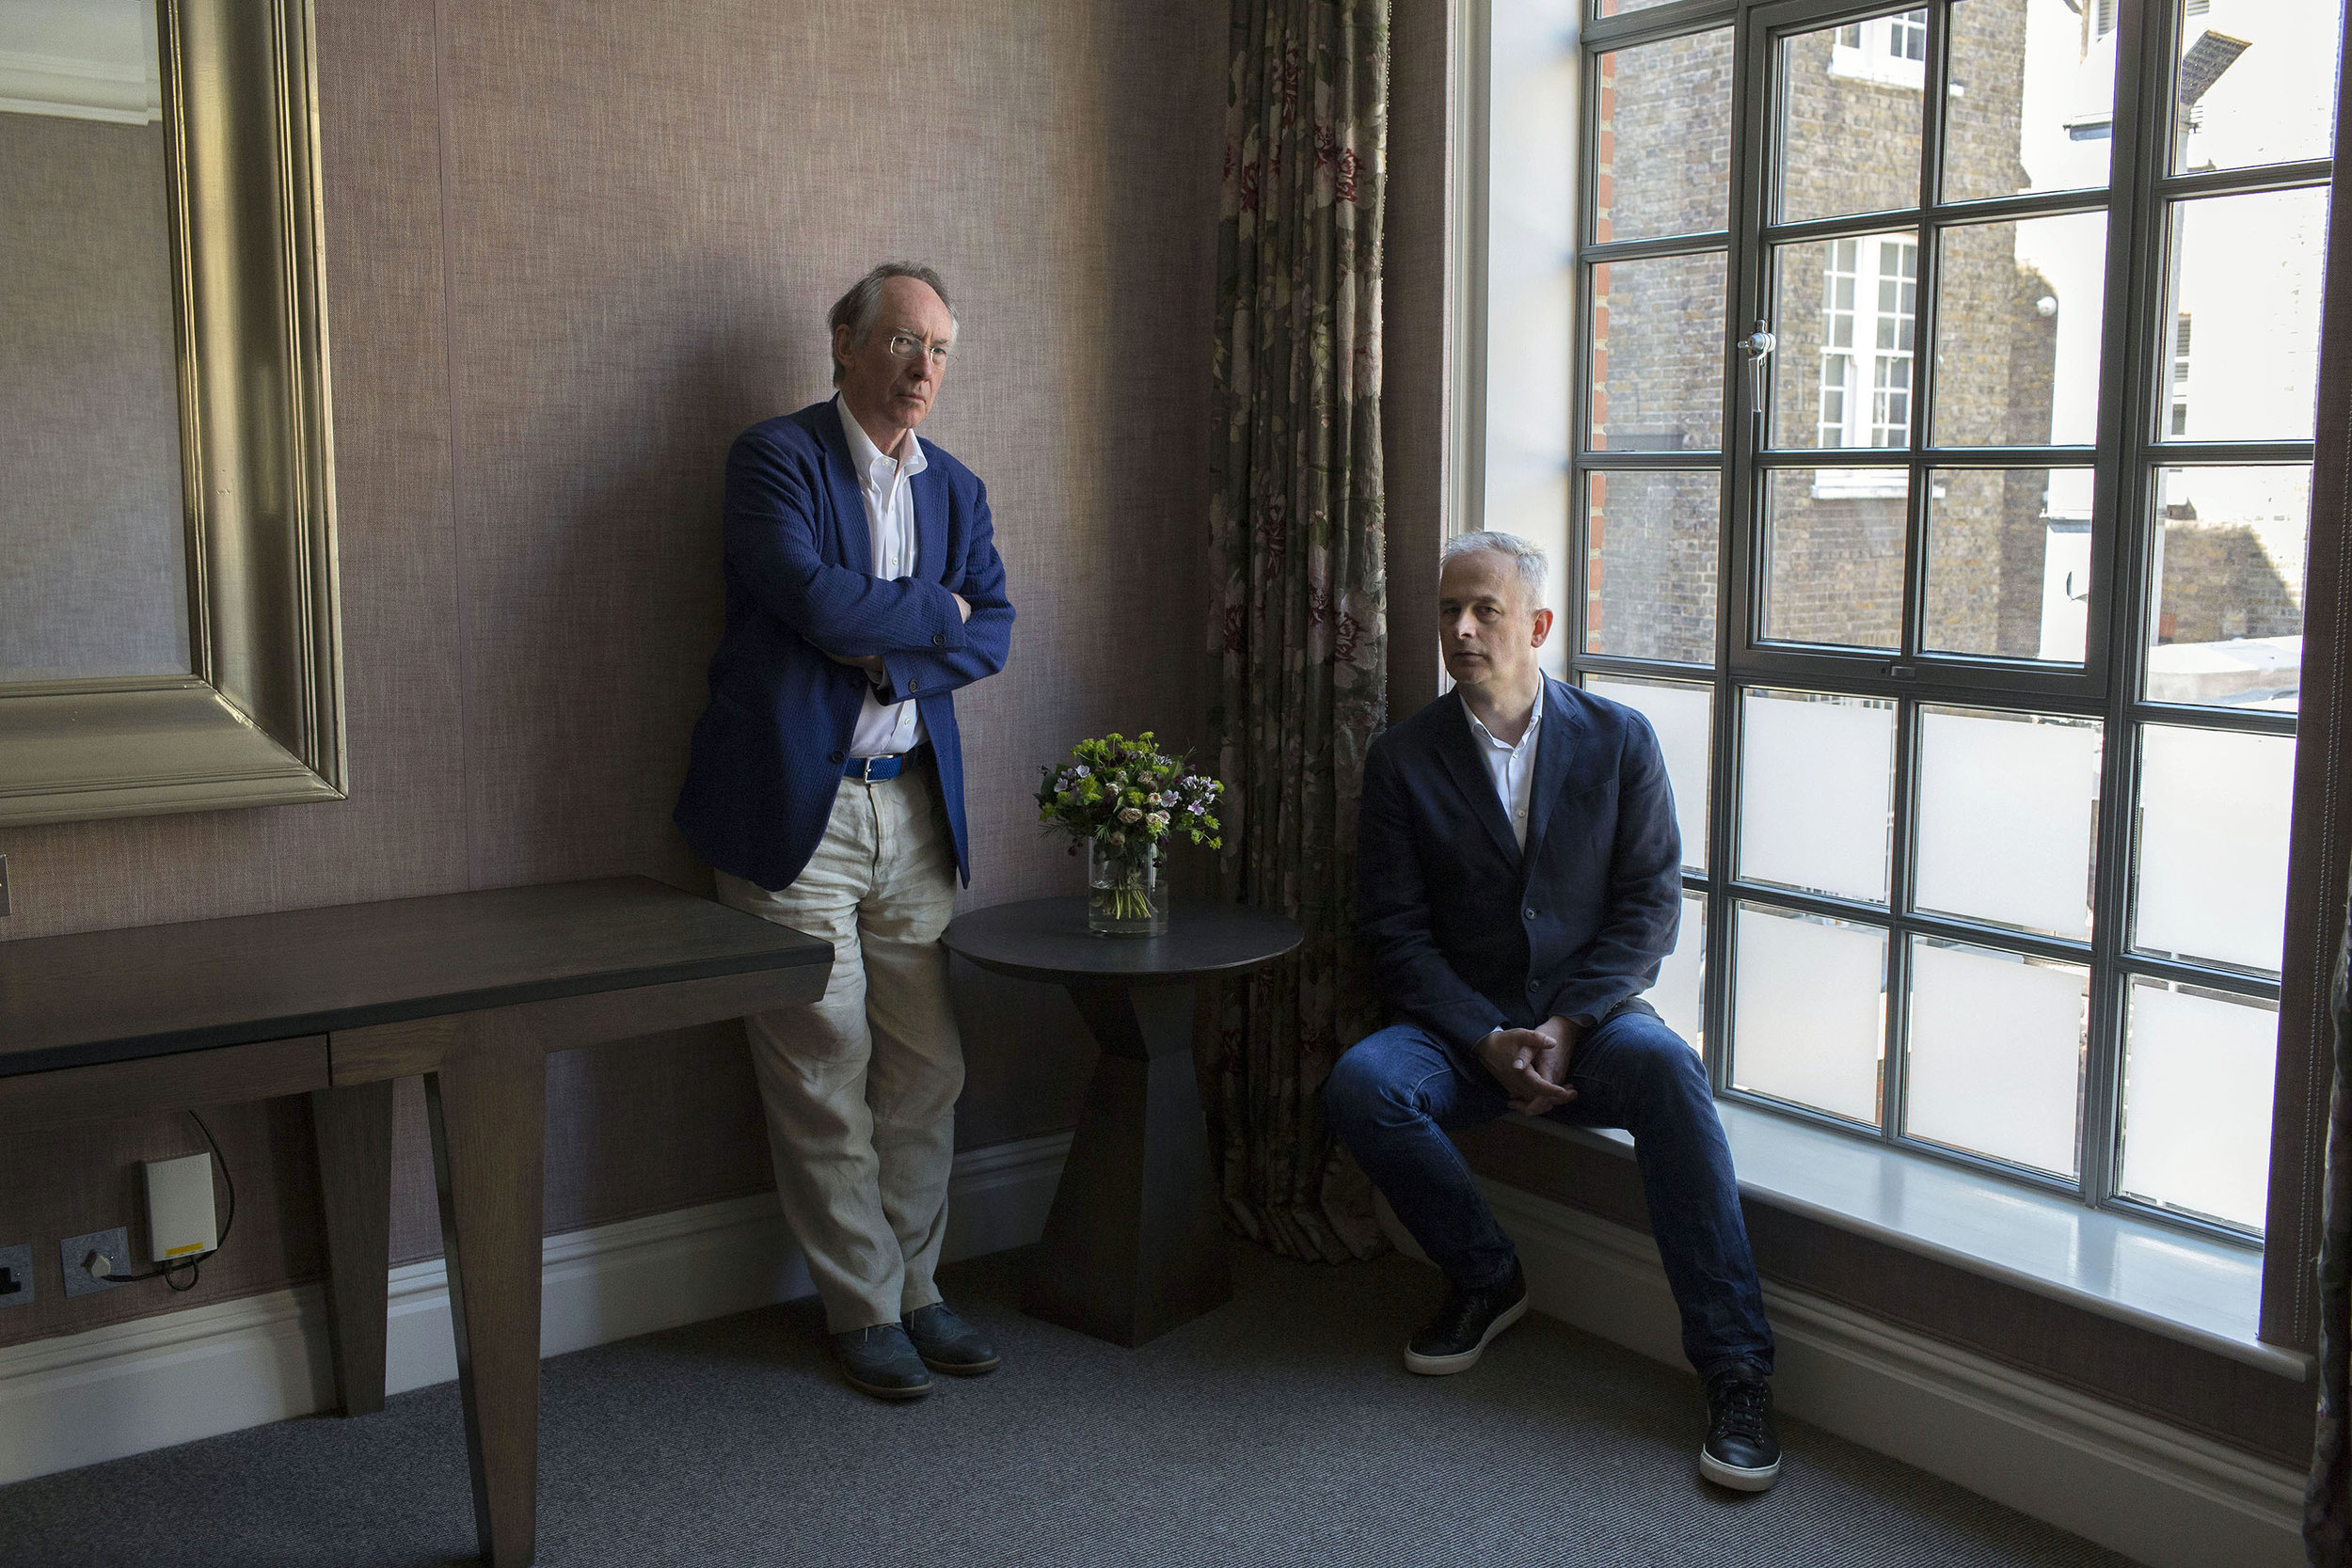 English novelist Ian McEwan and director Dominic Cooke, photographed in London for The New York Times